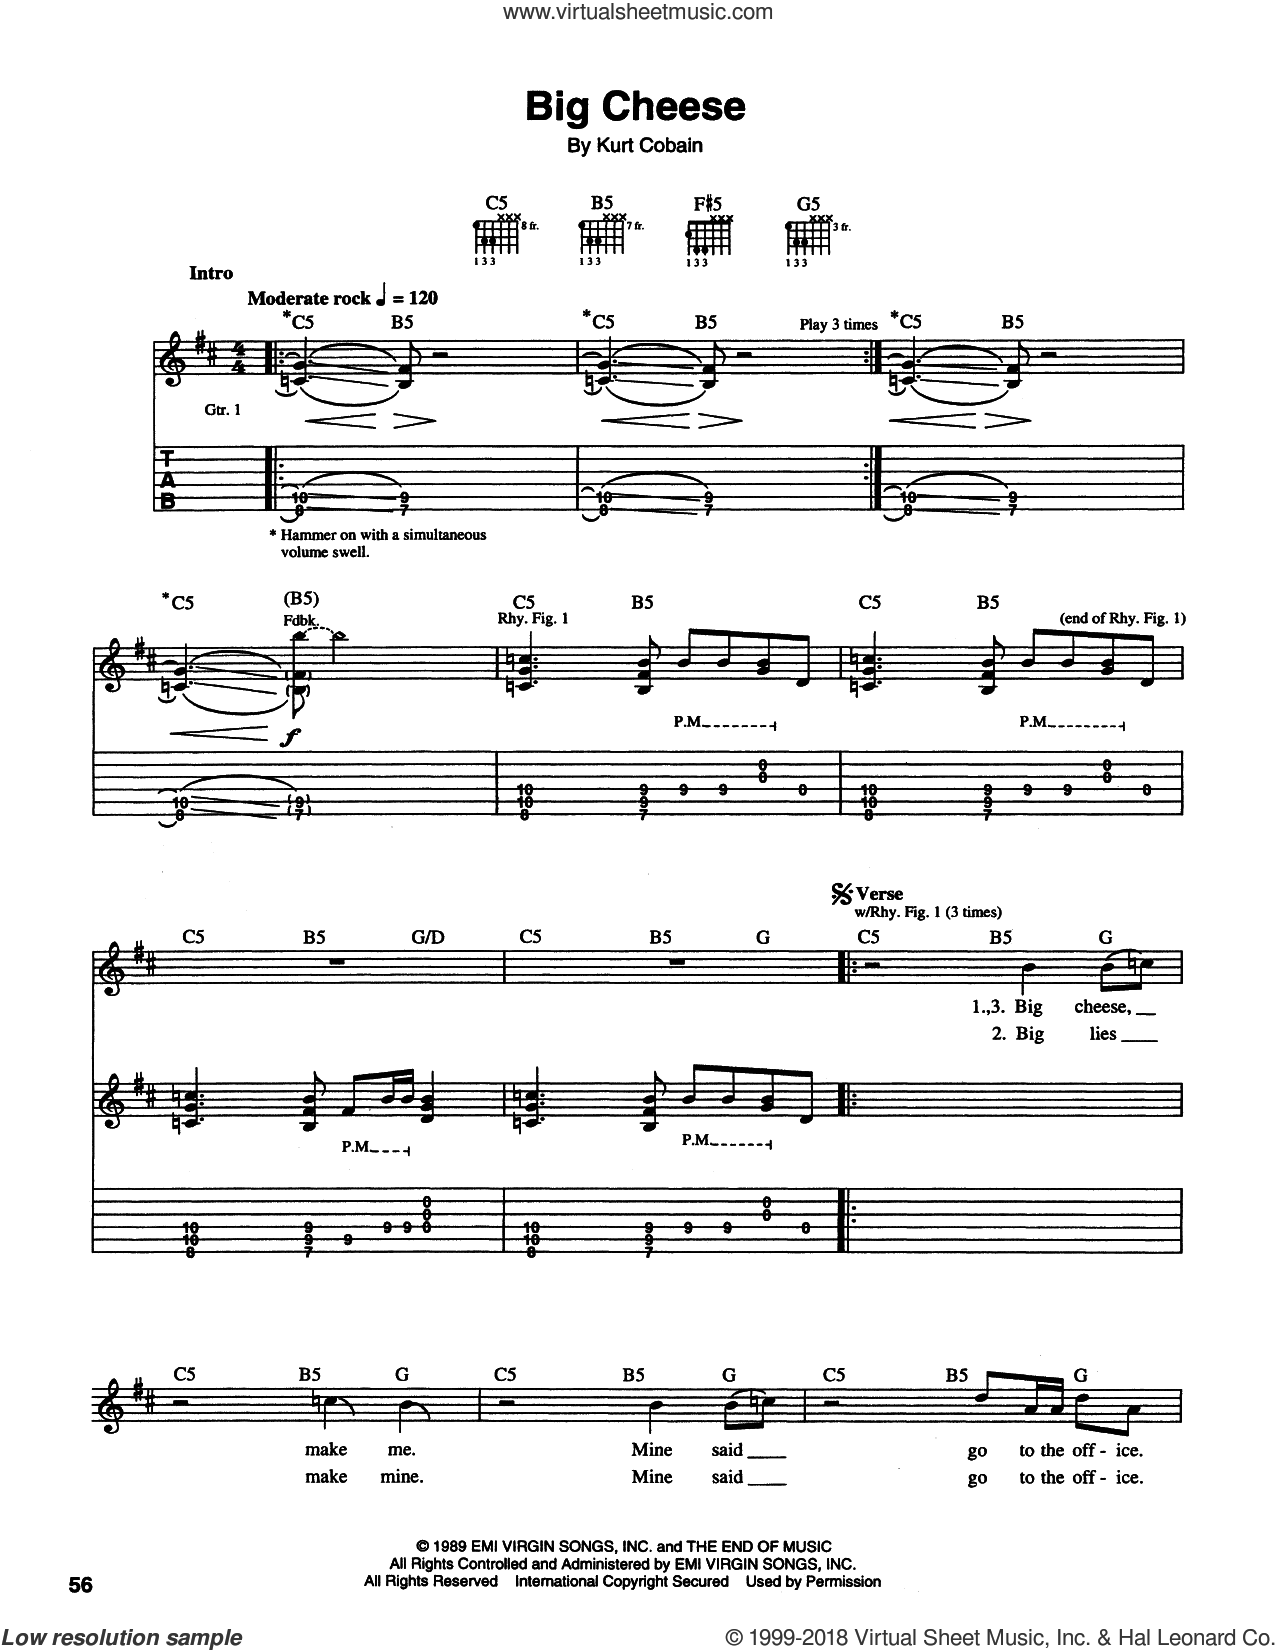 Big Cheese sheet music for guitar (tablature) by Nirvana, Krist Novoselic and Kurt Cobain, intermediate